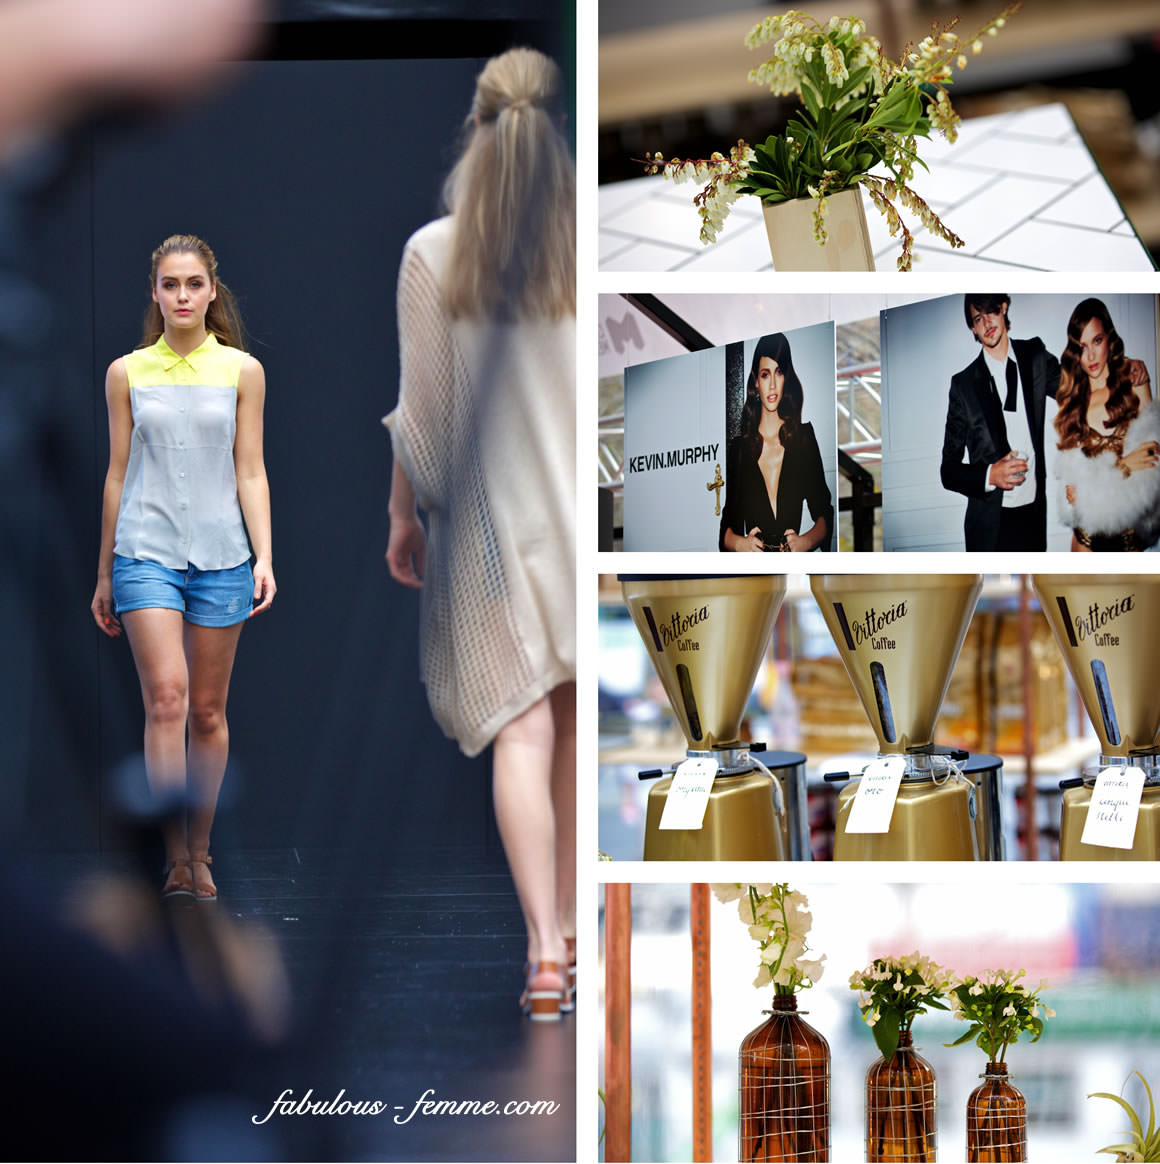 bloggers imp[ression of the msfw in melbourne Spring Fashion 2013